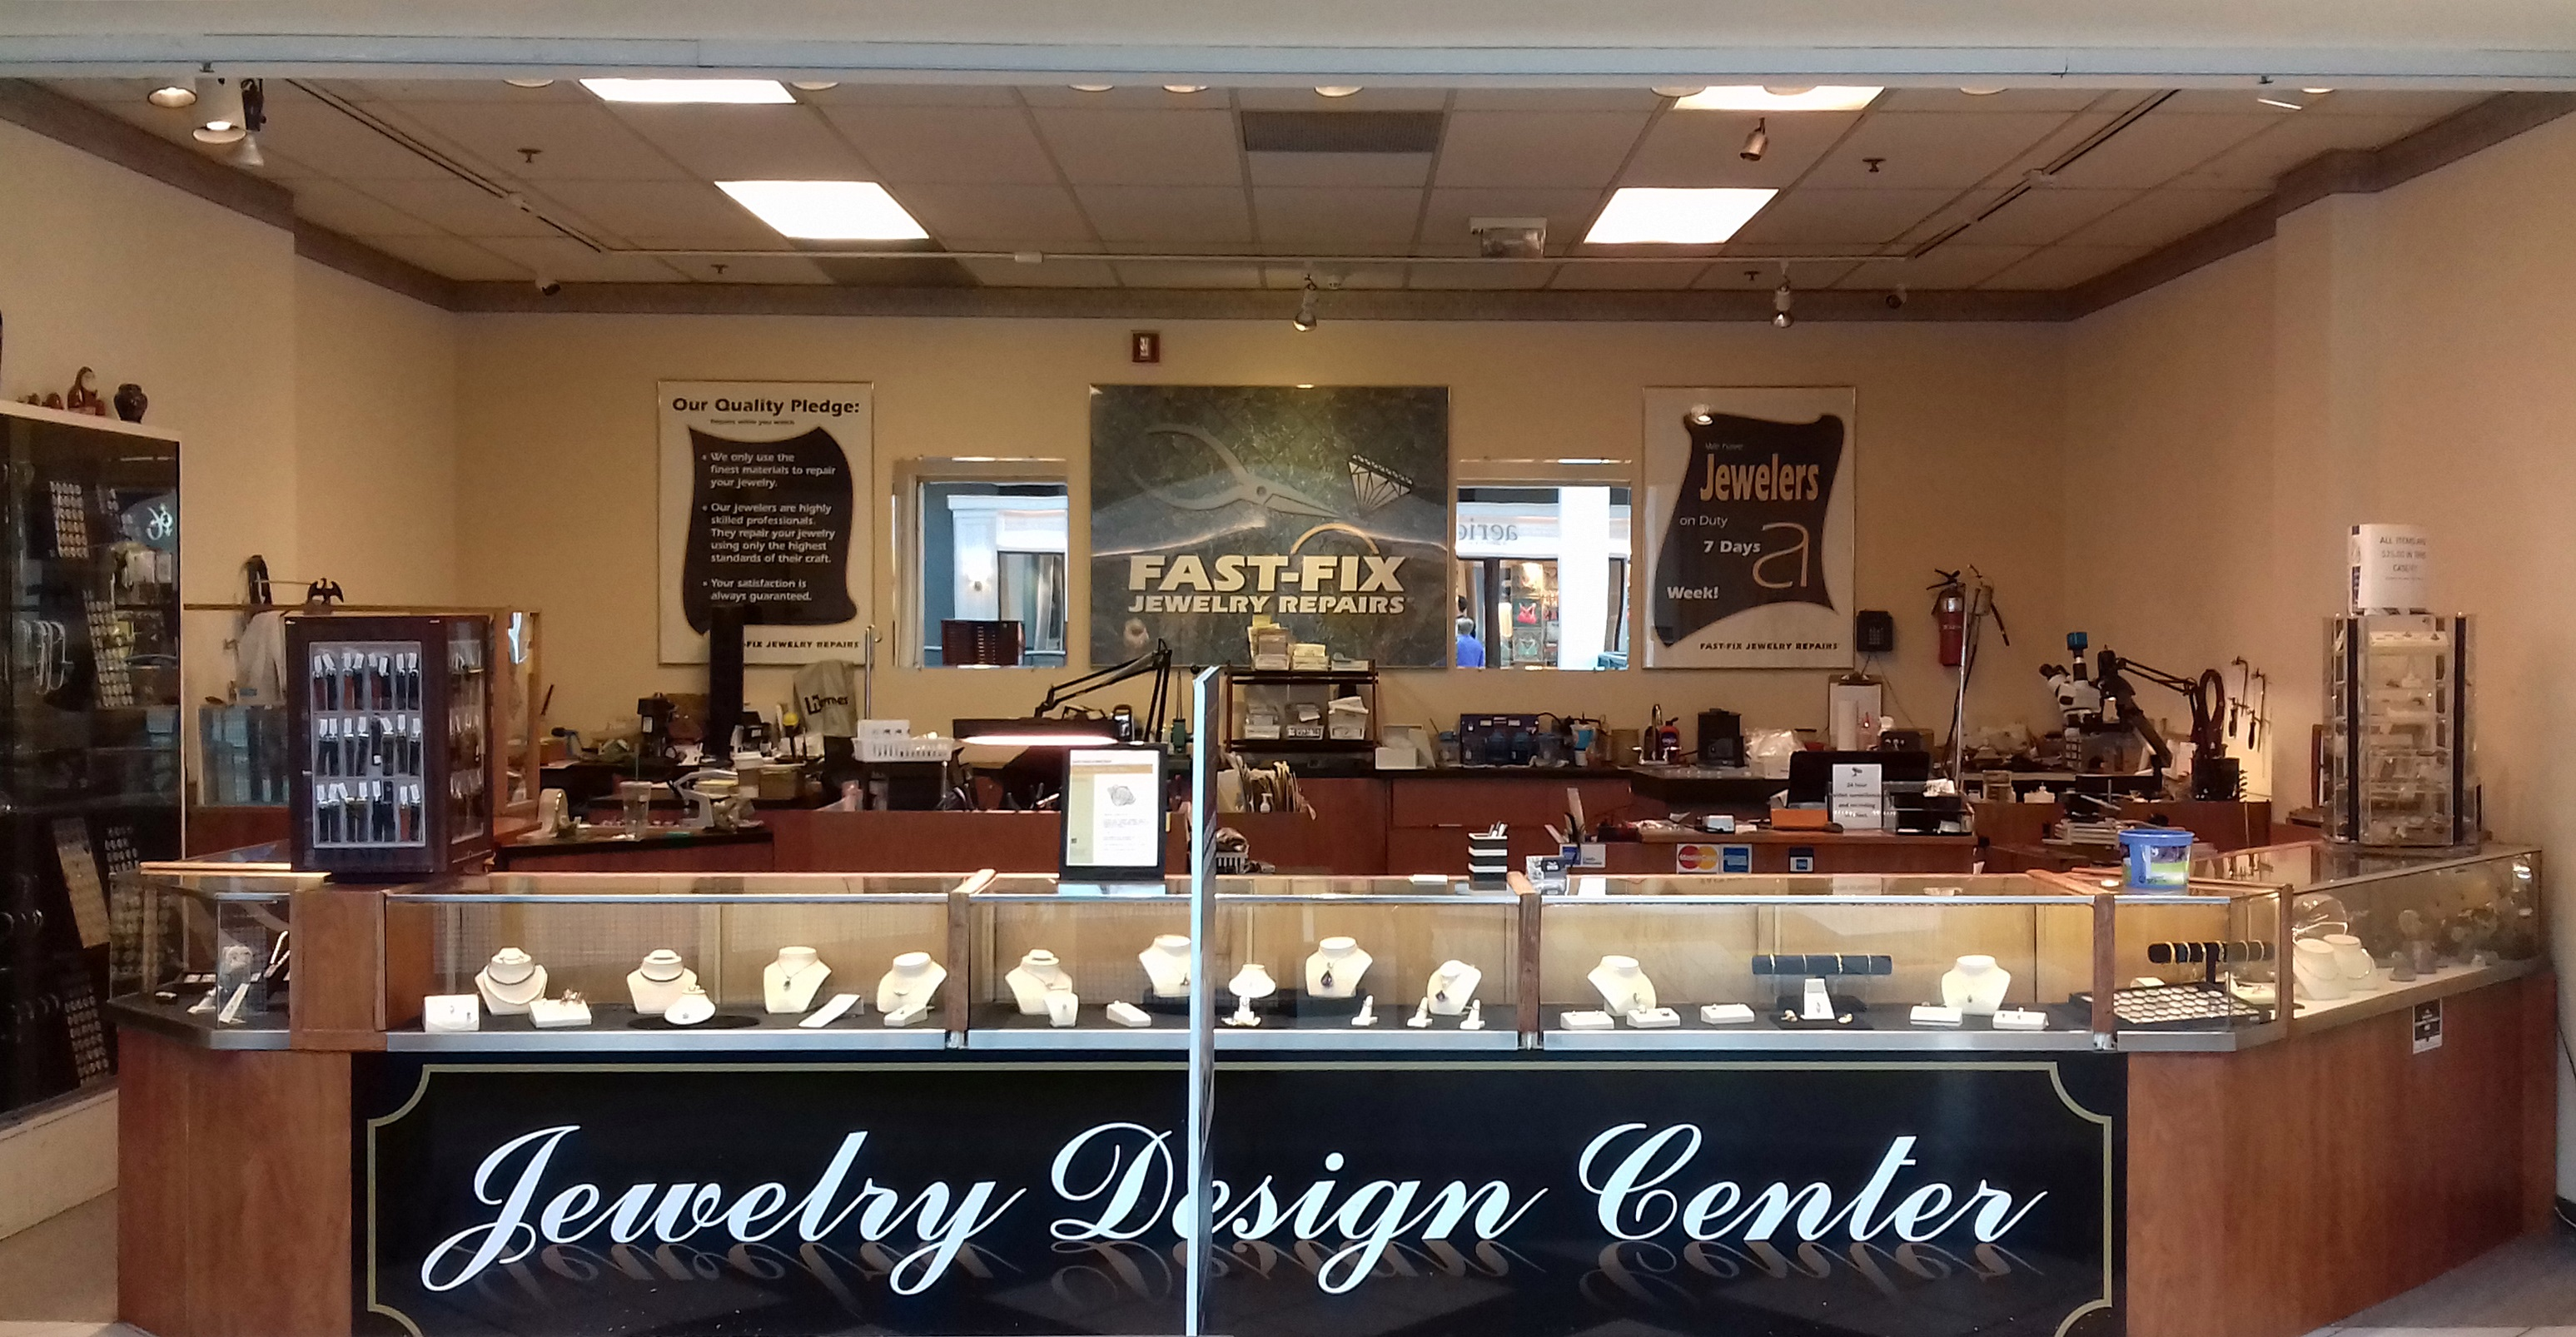 Interior of a Fast-Fix franchise store with jewelry counter on display